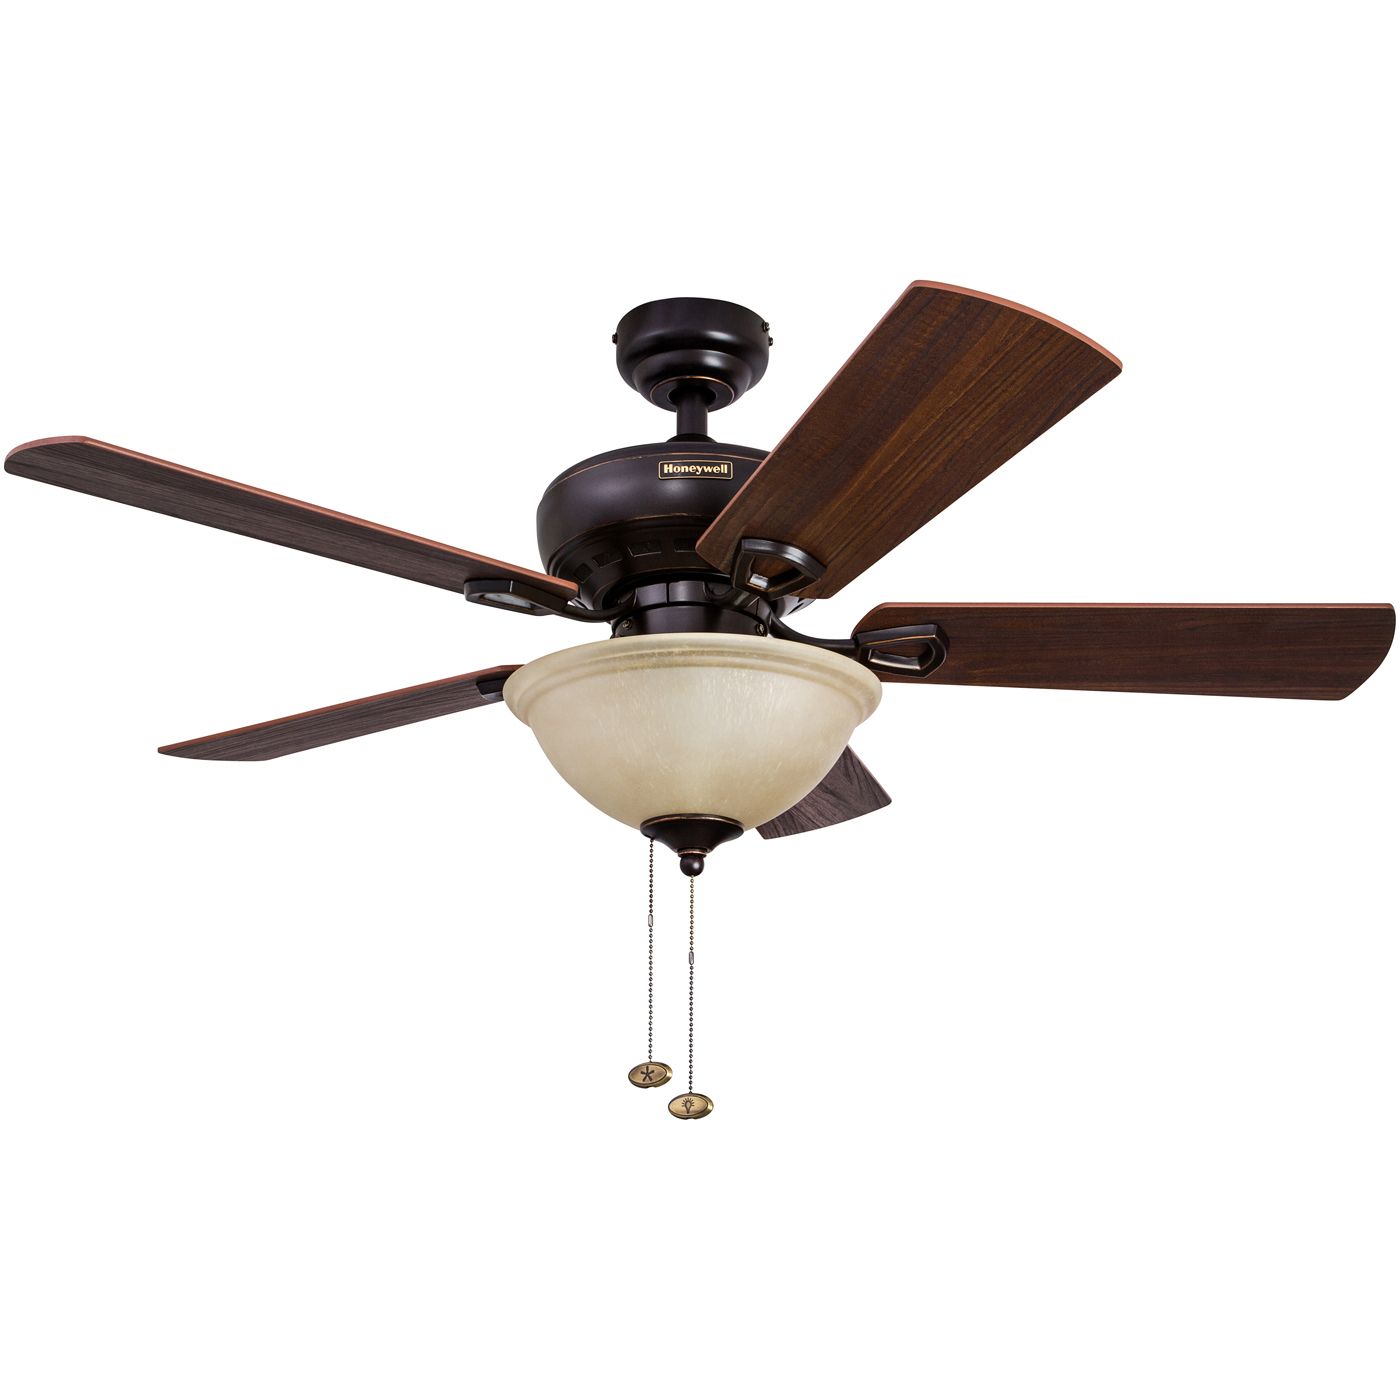 """44"""" Honeywell Woodcrest Oil Rubbed Bronze Ceiling Fan with Bowl Light by HKC"""